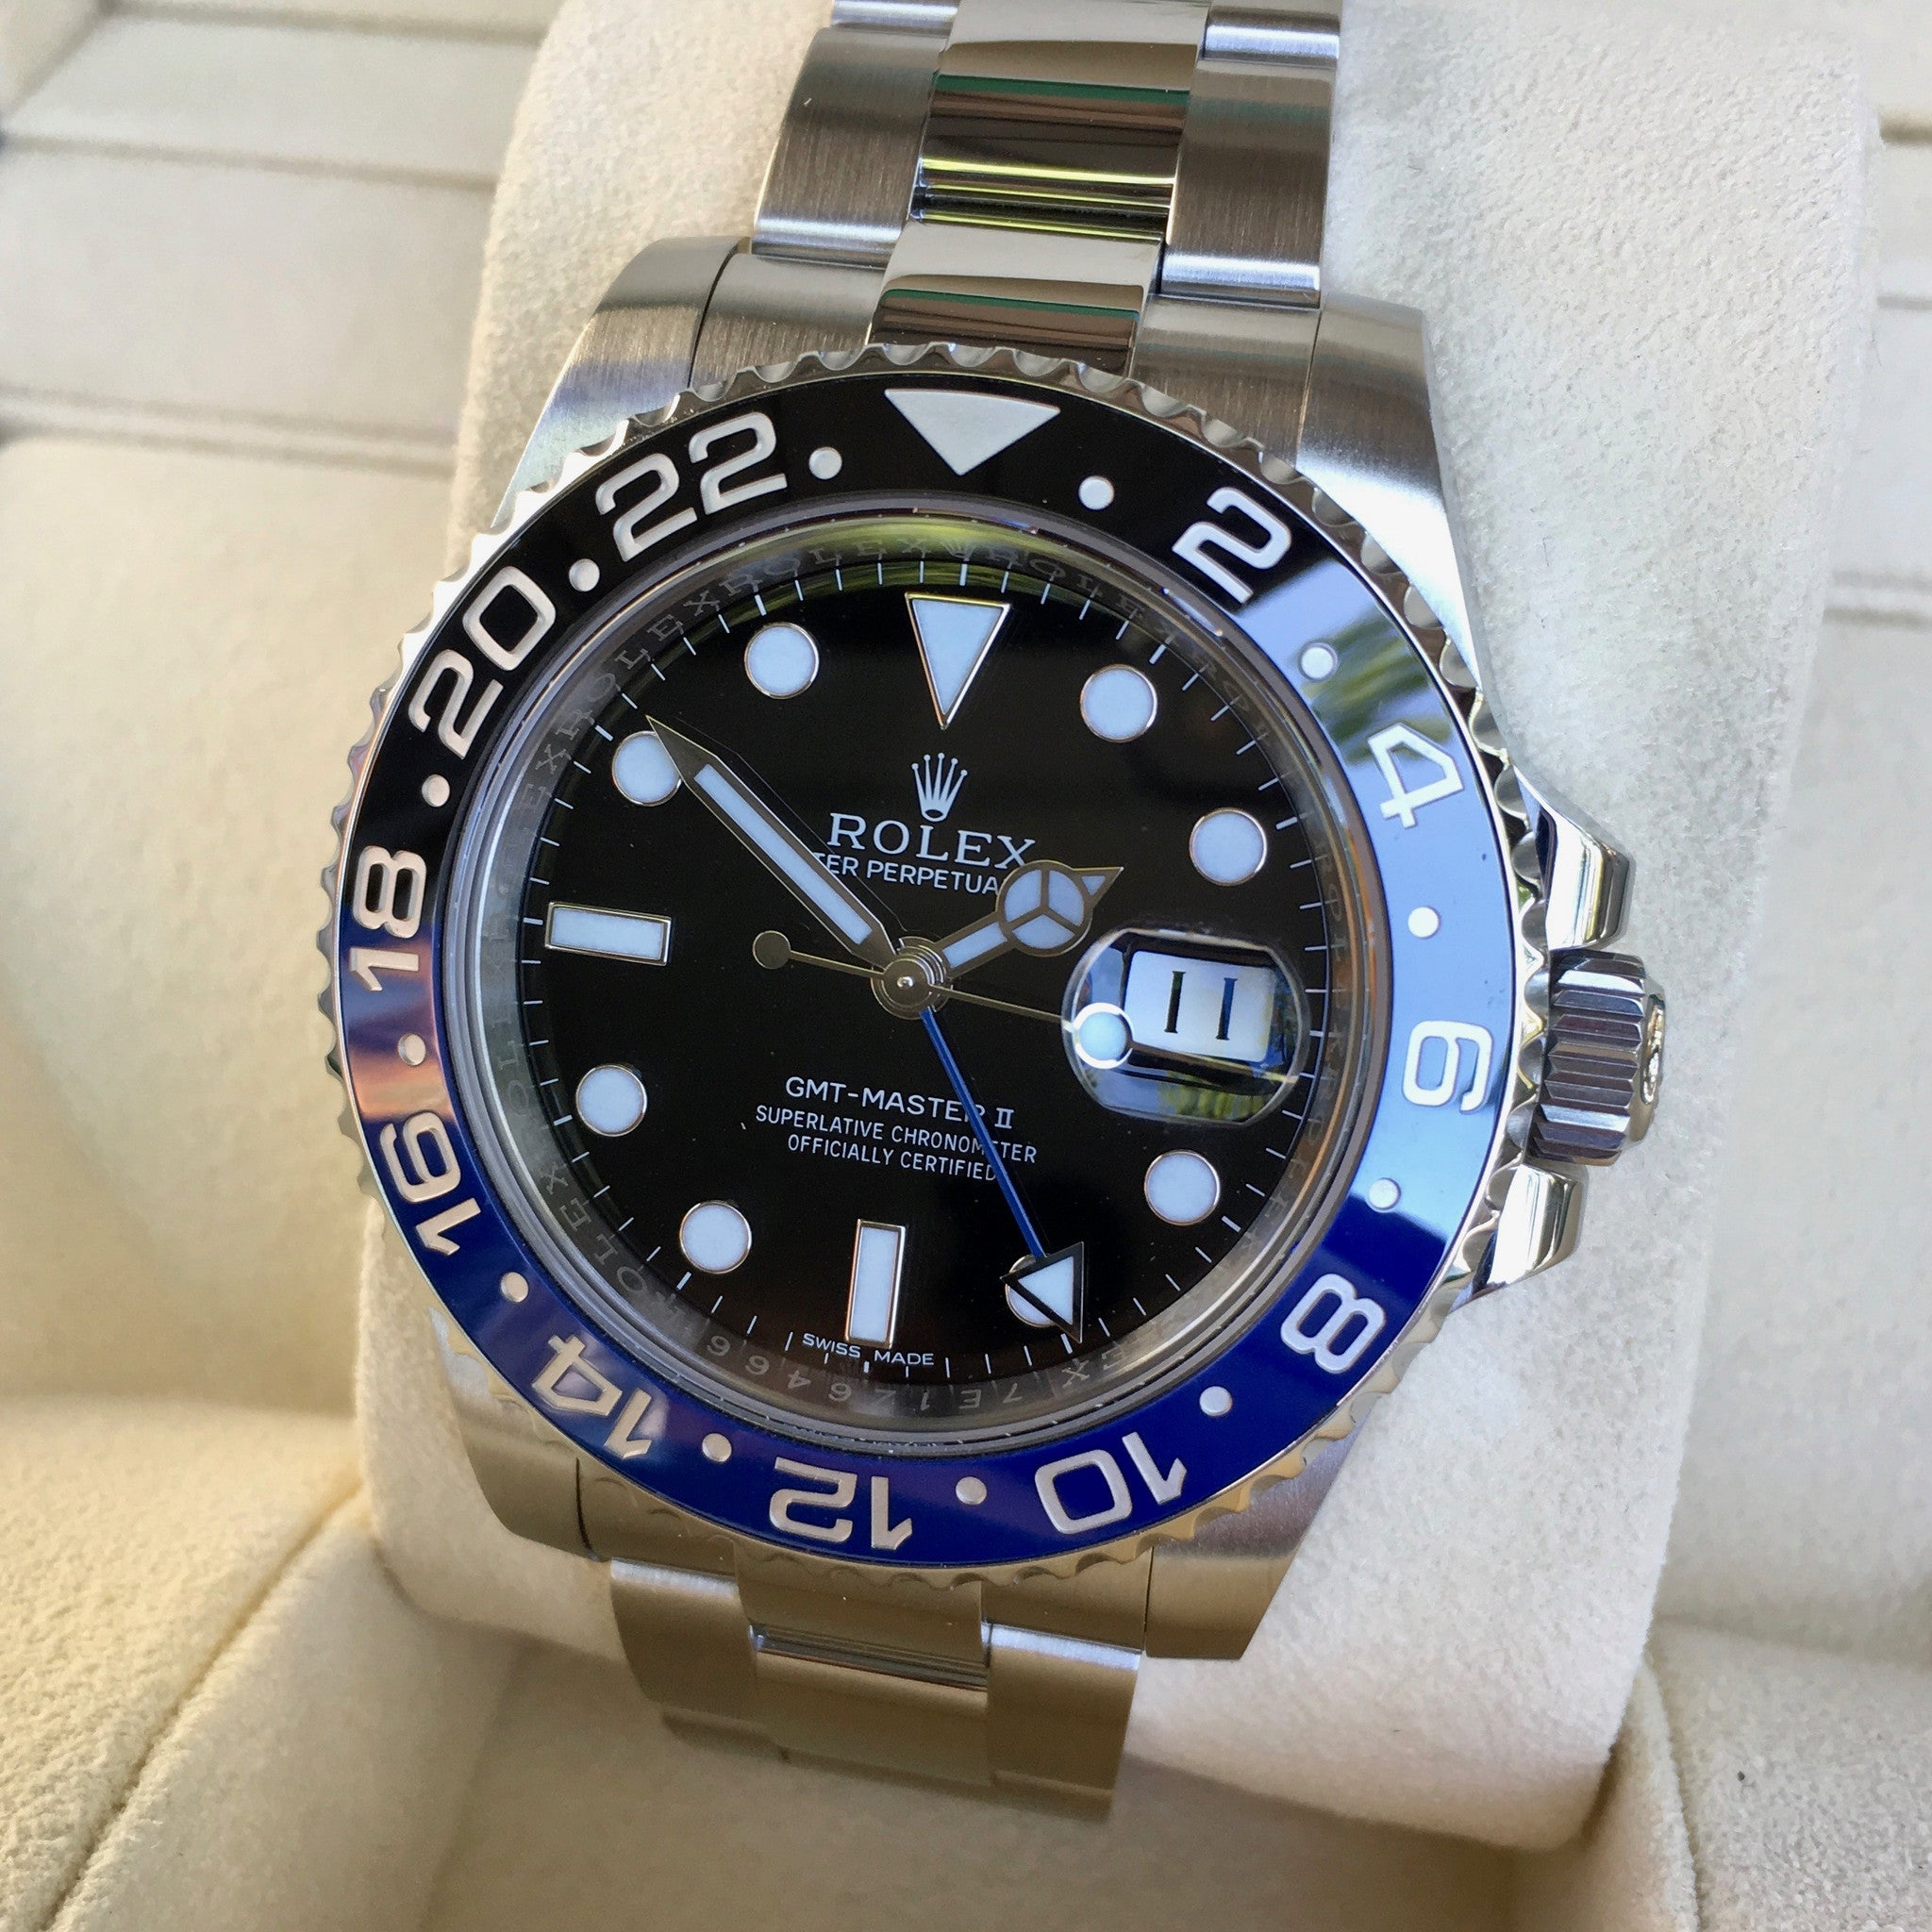 Rolex GMT Master II 116710 BLNR Batman Ceramic Steel Automatic Watch Box Papers - Hashtag Watch Company